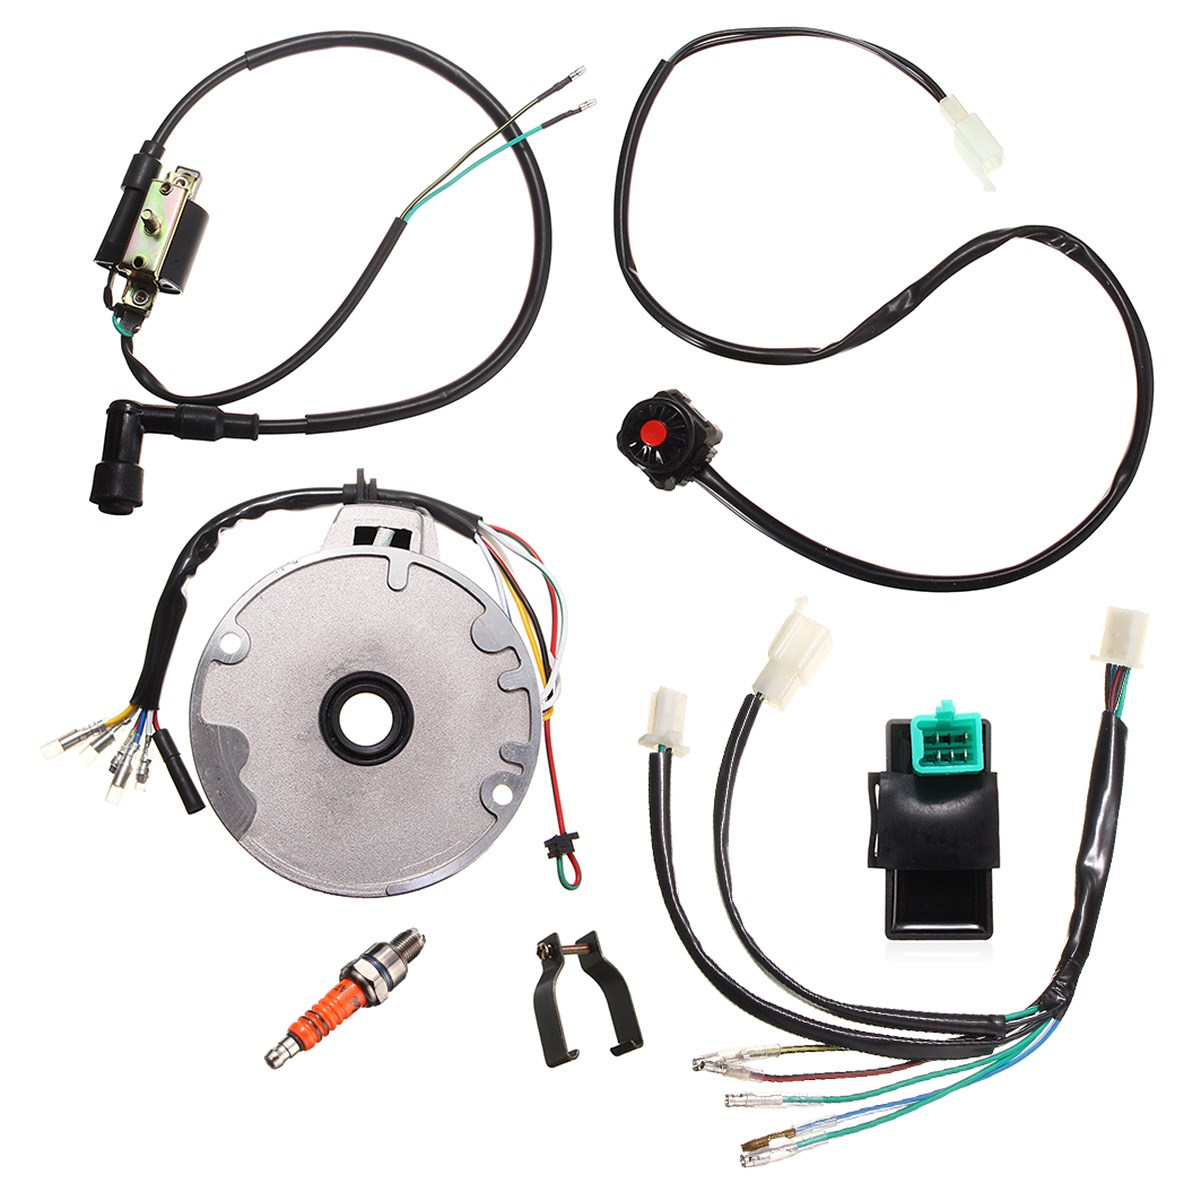 small resolution of universal motorcycle dirt pit bike cdi for spark plug switch magneto wire harness kit 50